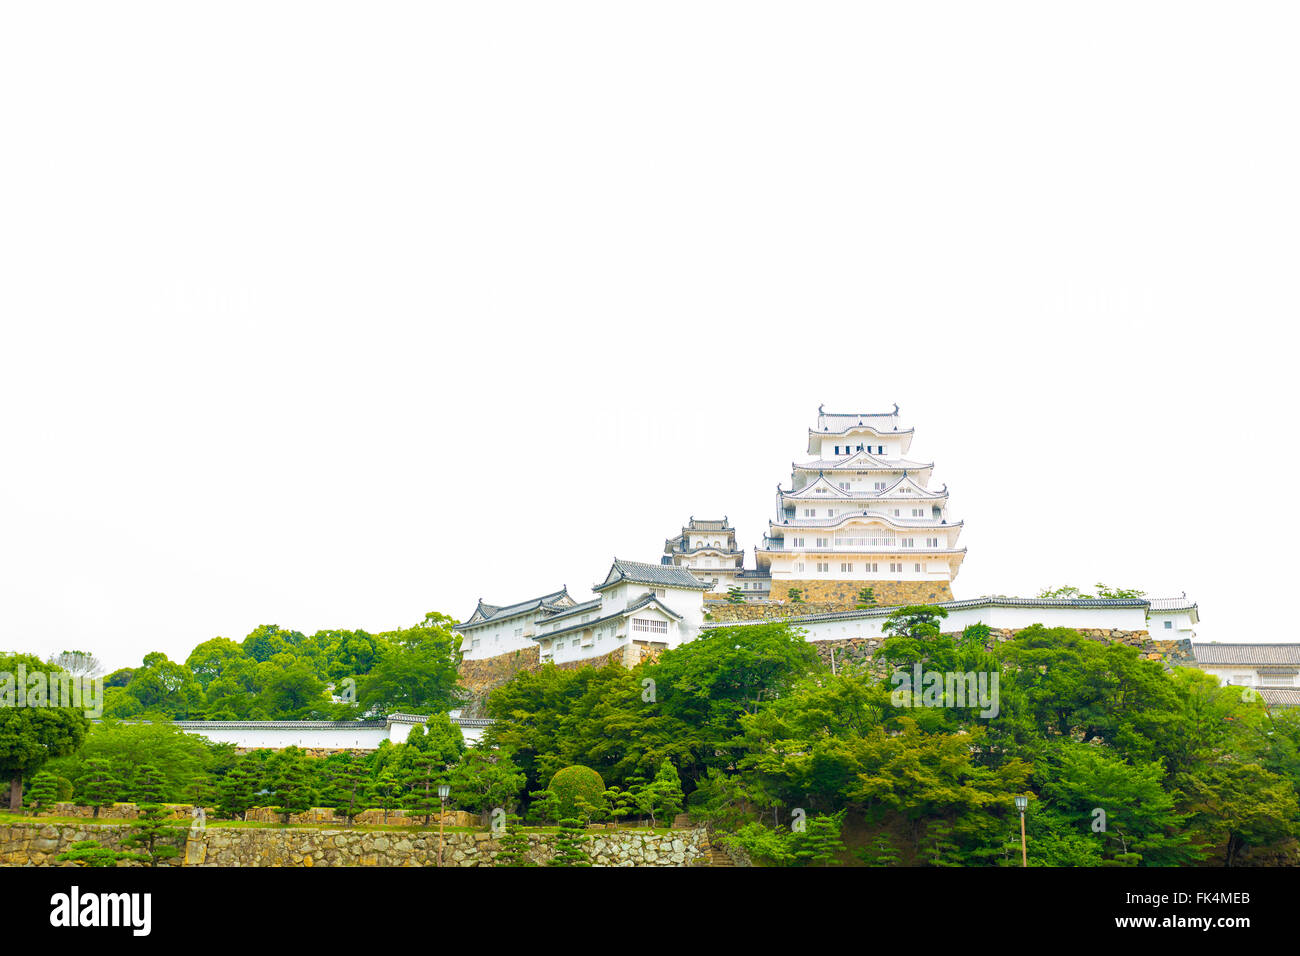 Distant view of front facade of Himeji-jo castle on bright overcast day in Himeji, Japan after 2015 renovations - Stock Image